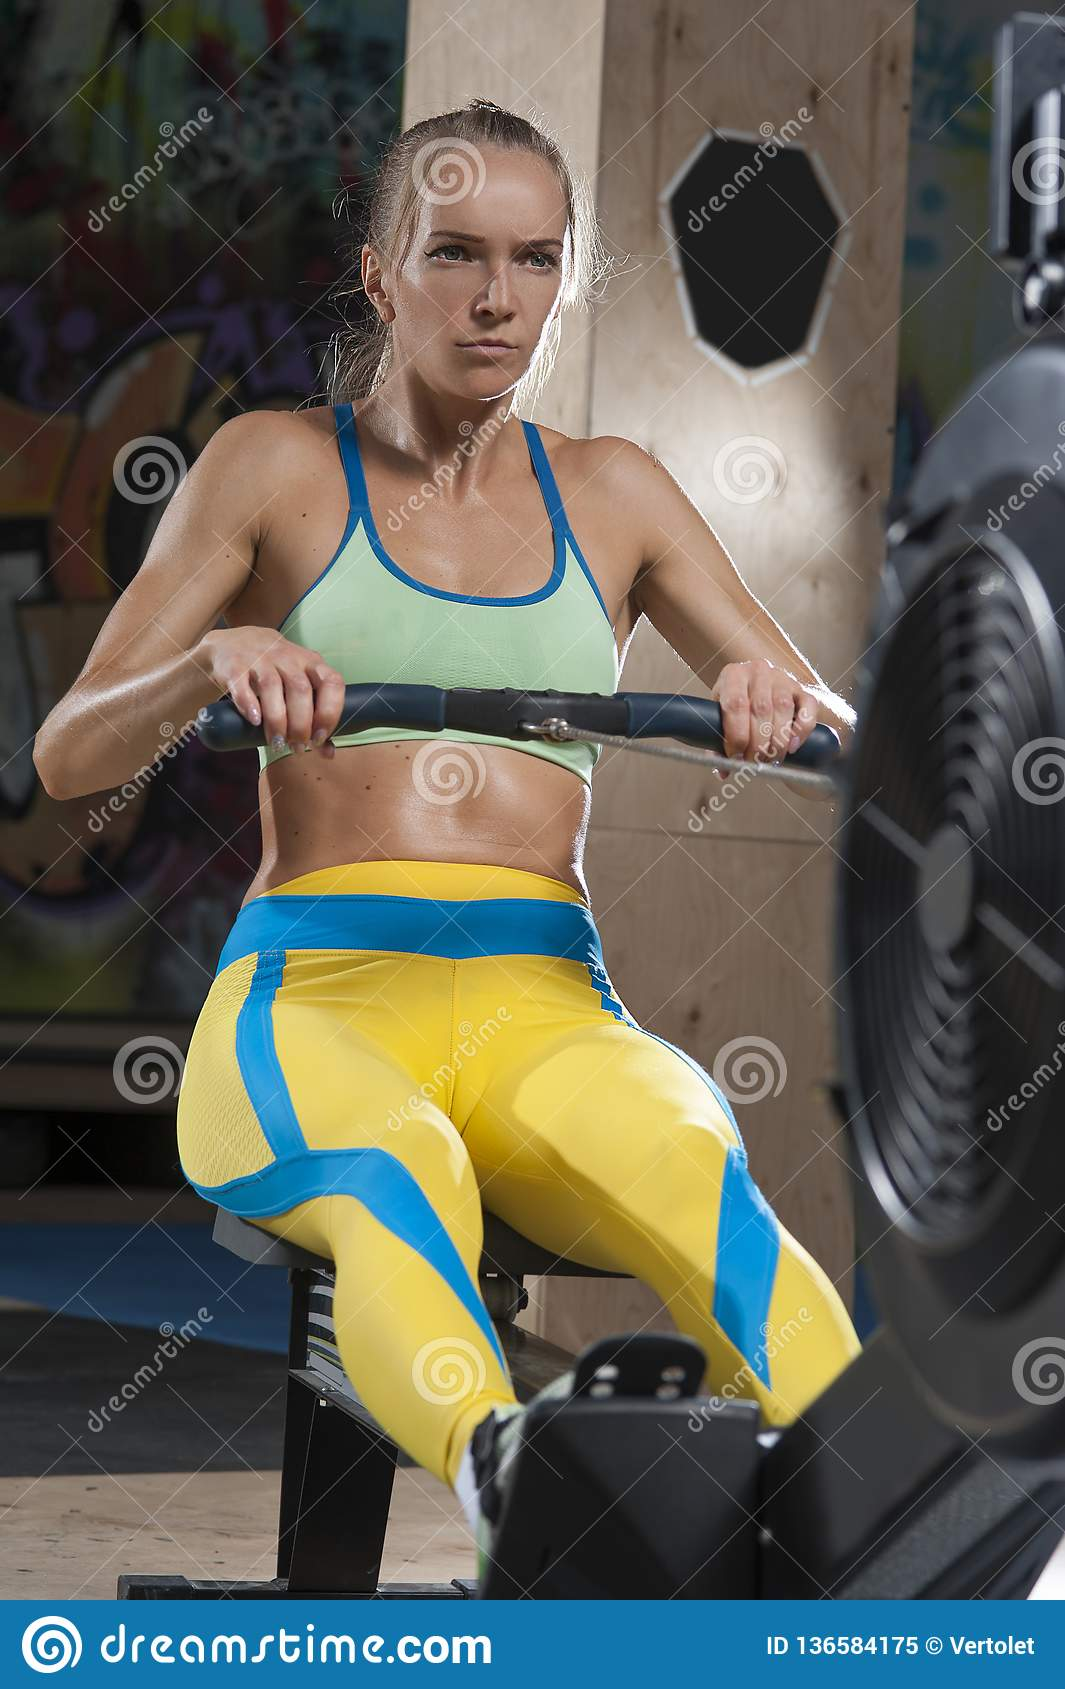 Sporty Blonde Woman Exercising On Rowing Machine Stock Image - Image